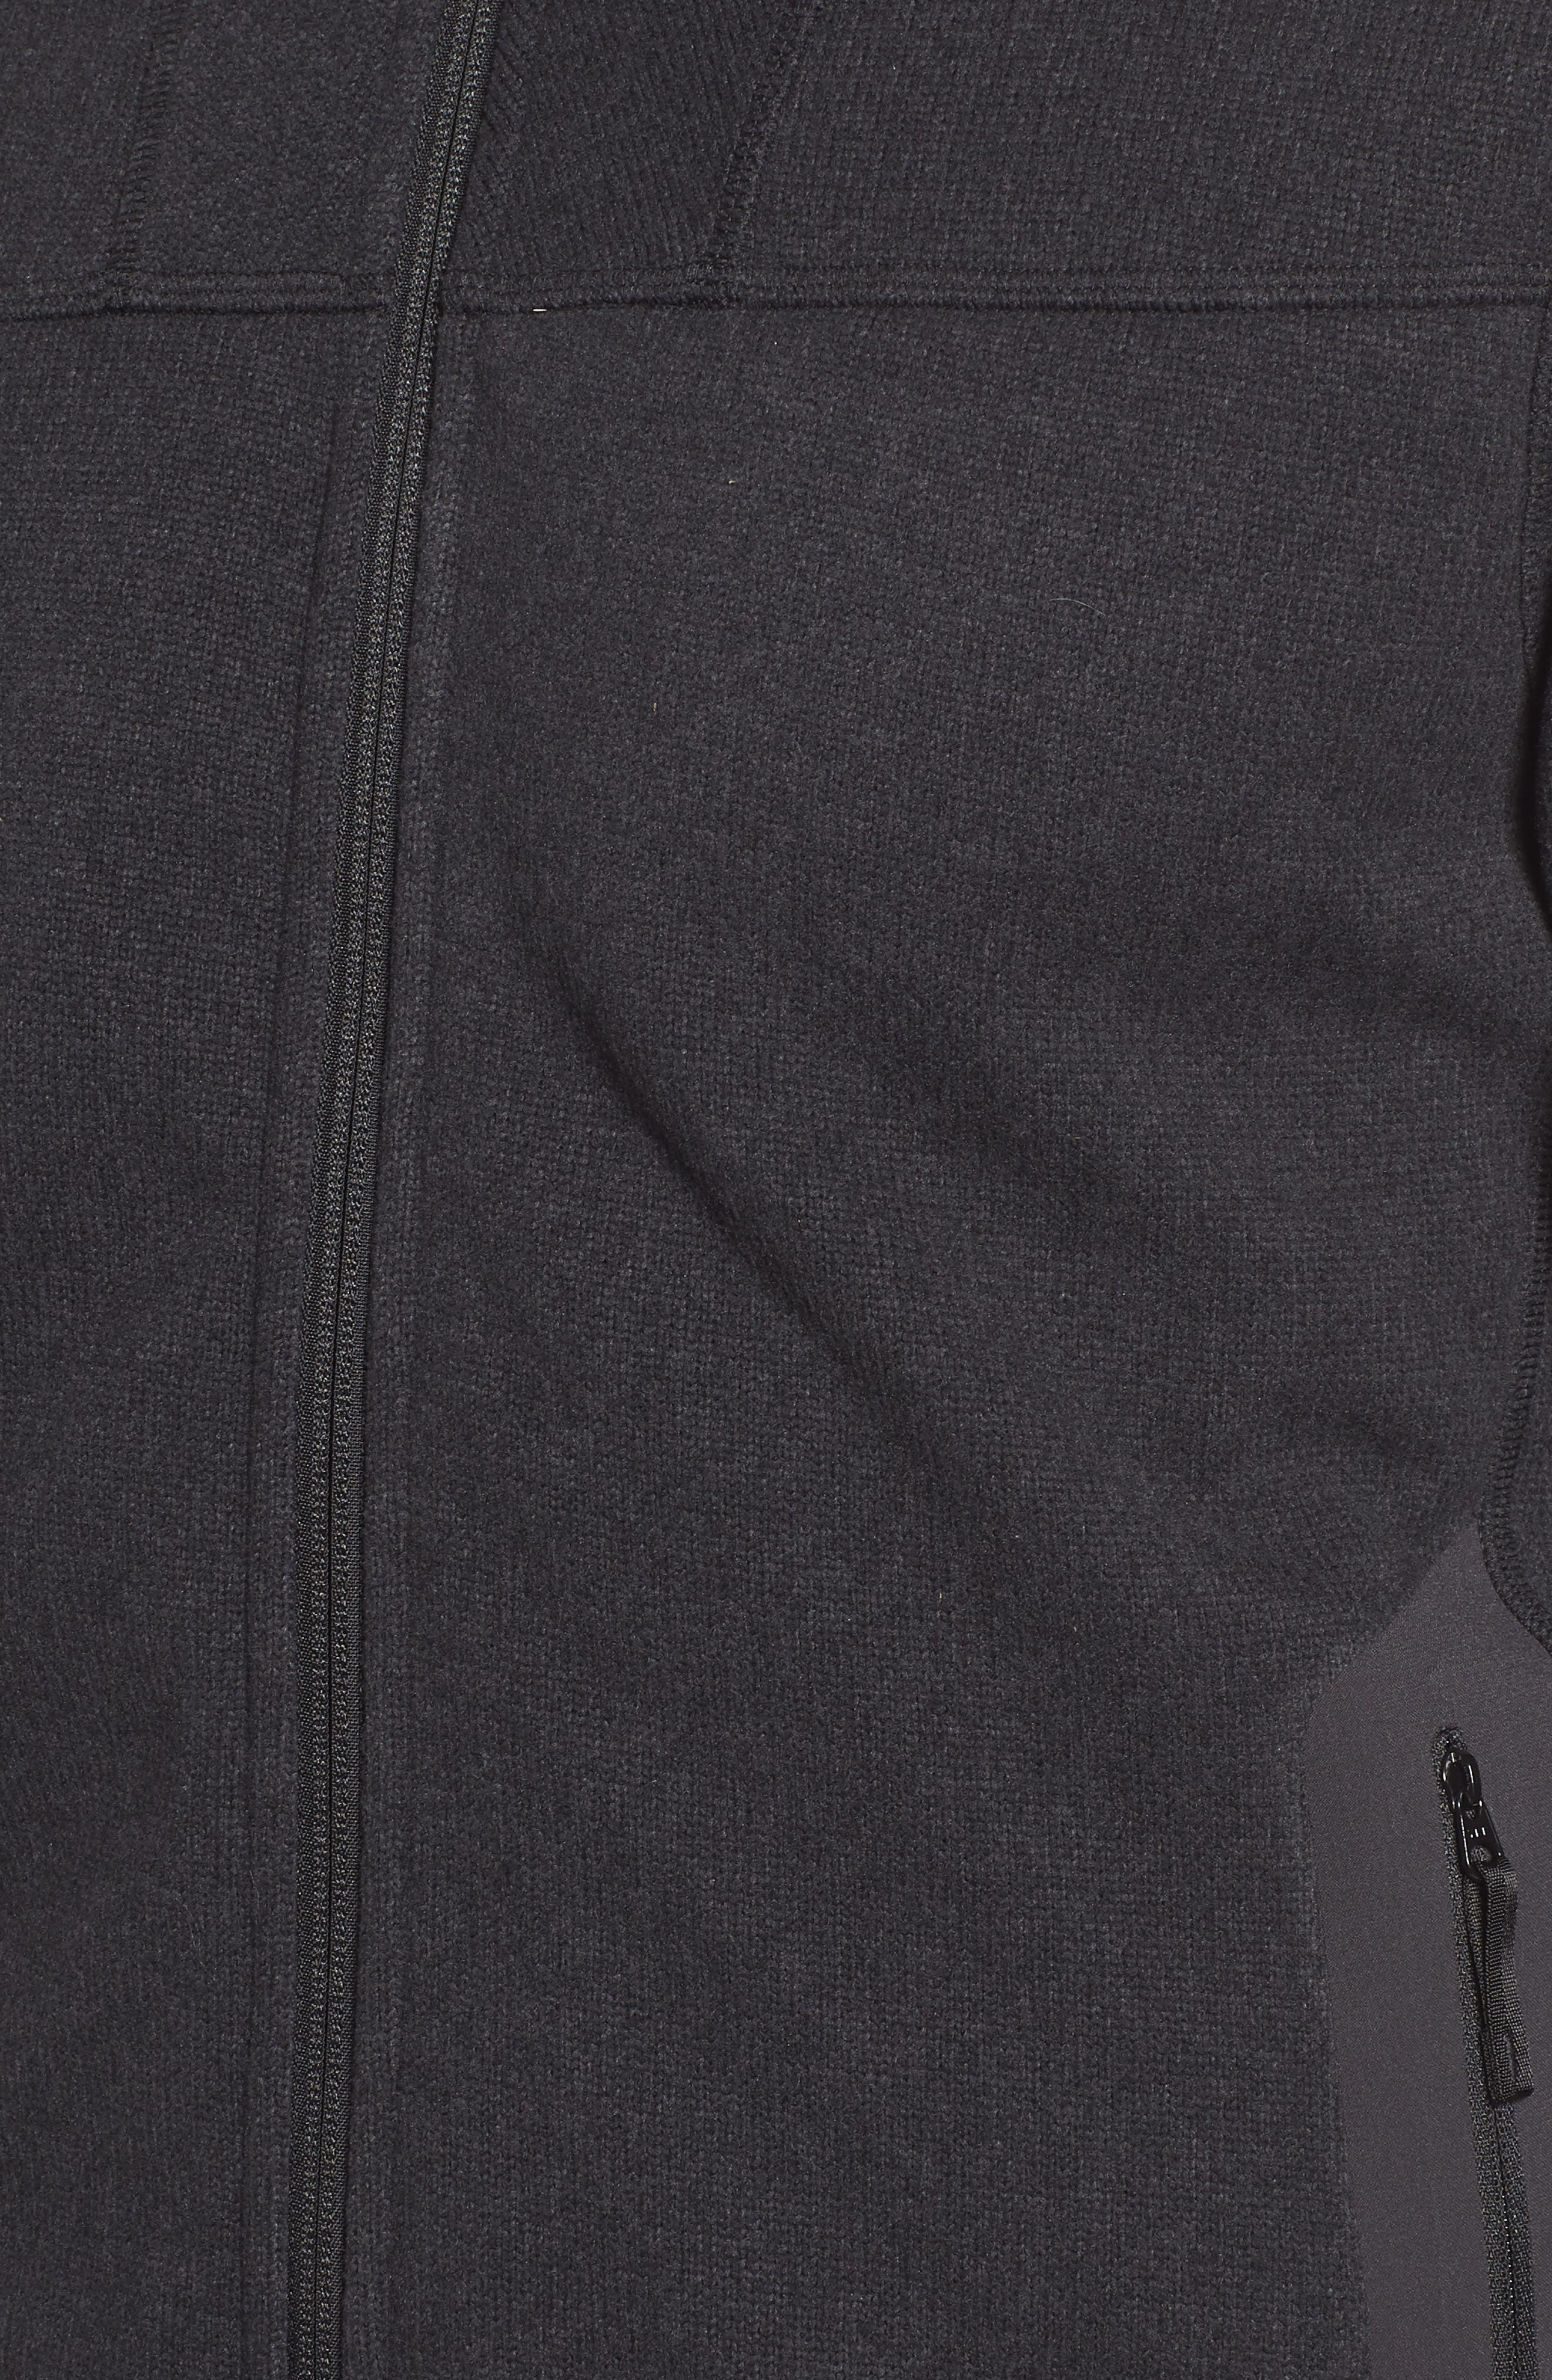 'Covert' Relaxed Fit Technical Fleece Zip Jacket,                             Alternate thumbnail 5, color,                             BLACK HEATHER